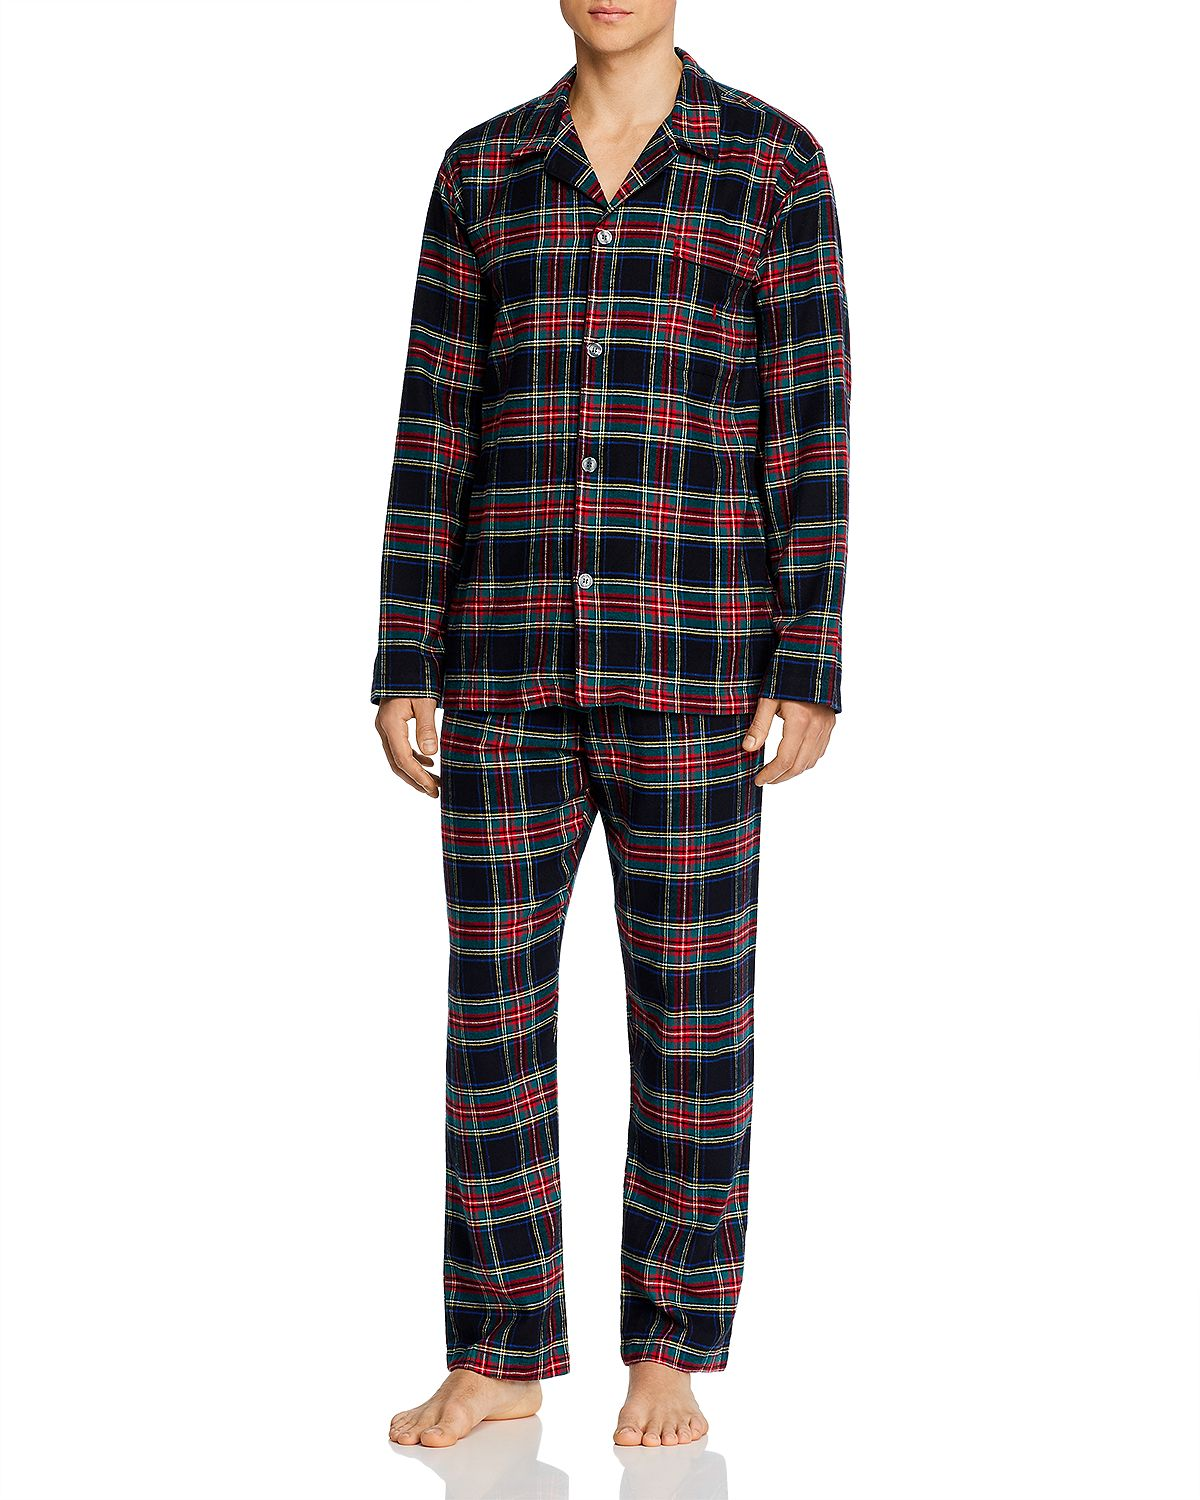 Polo Ralph Lauren Plaid Flannel Pajama Set Phillip Plaid